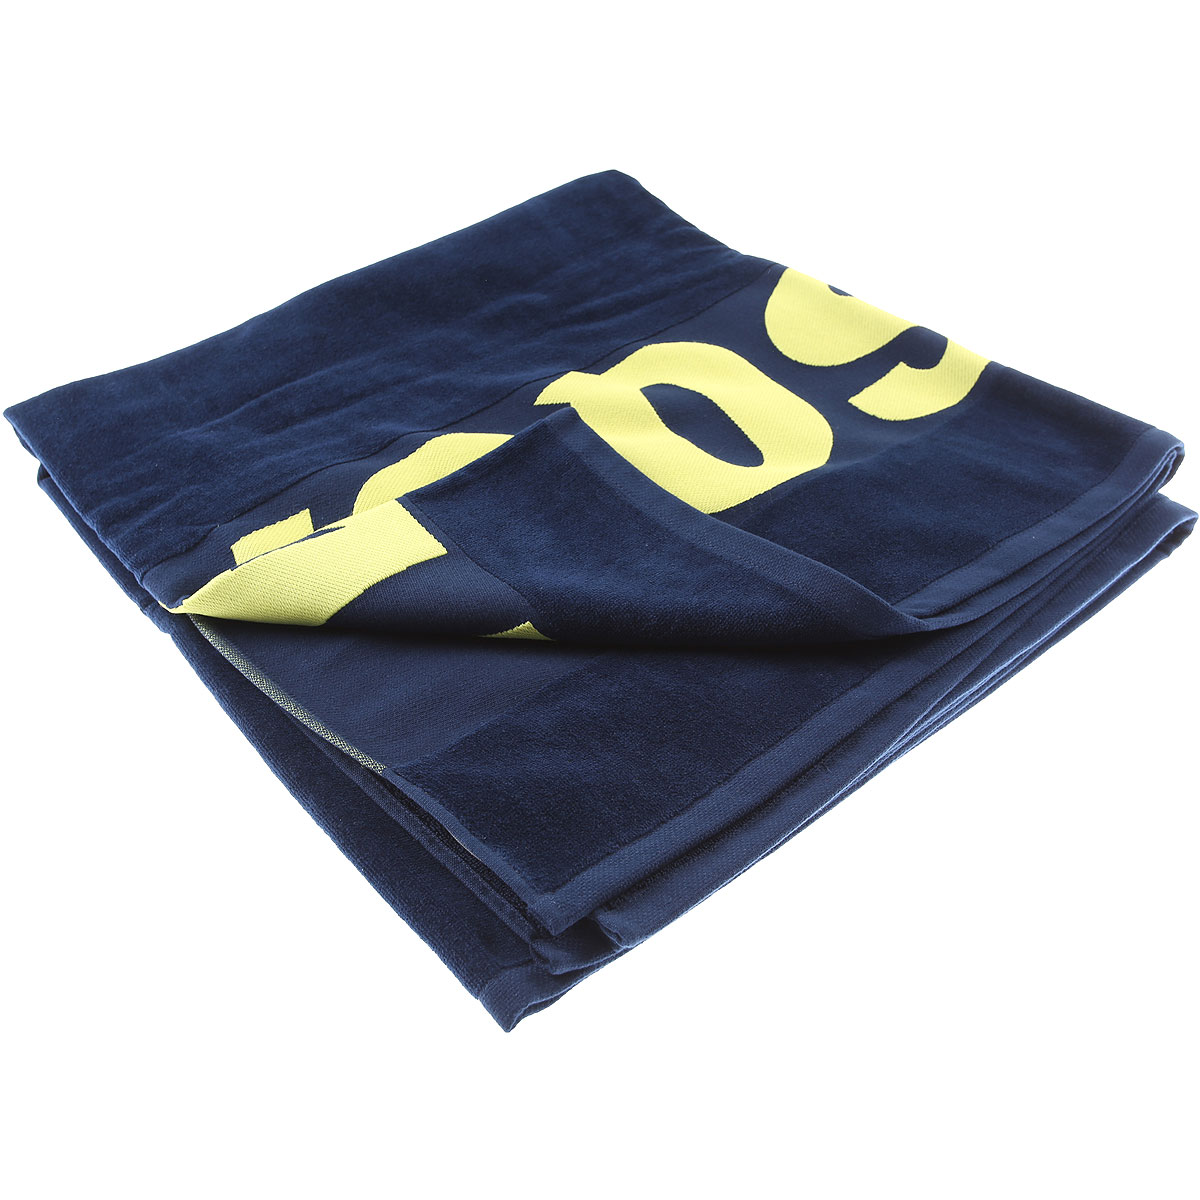 Dsquared2 Beach Towel On Sale in Outlet, Blue, Cotton, 2019